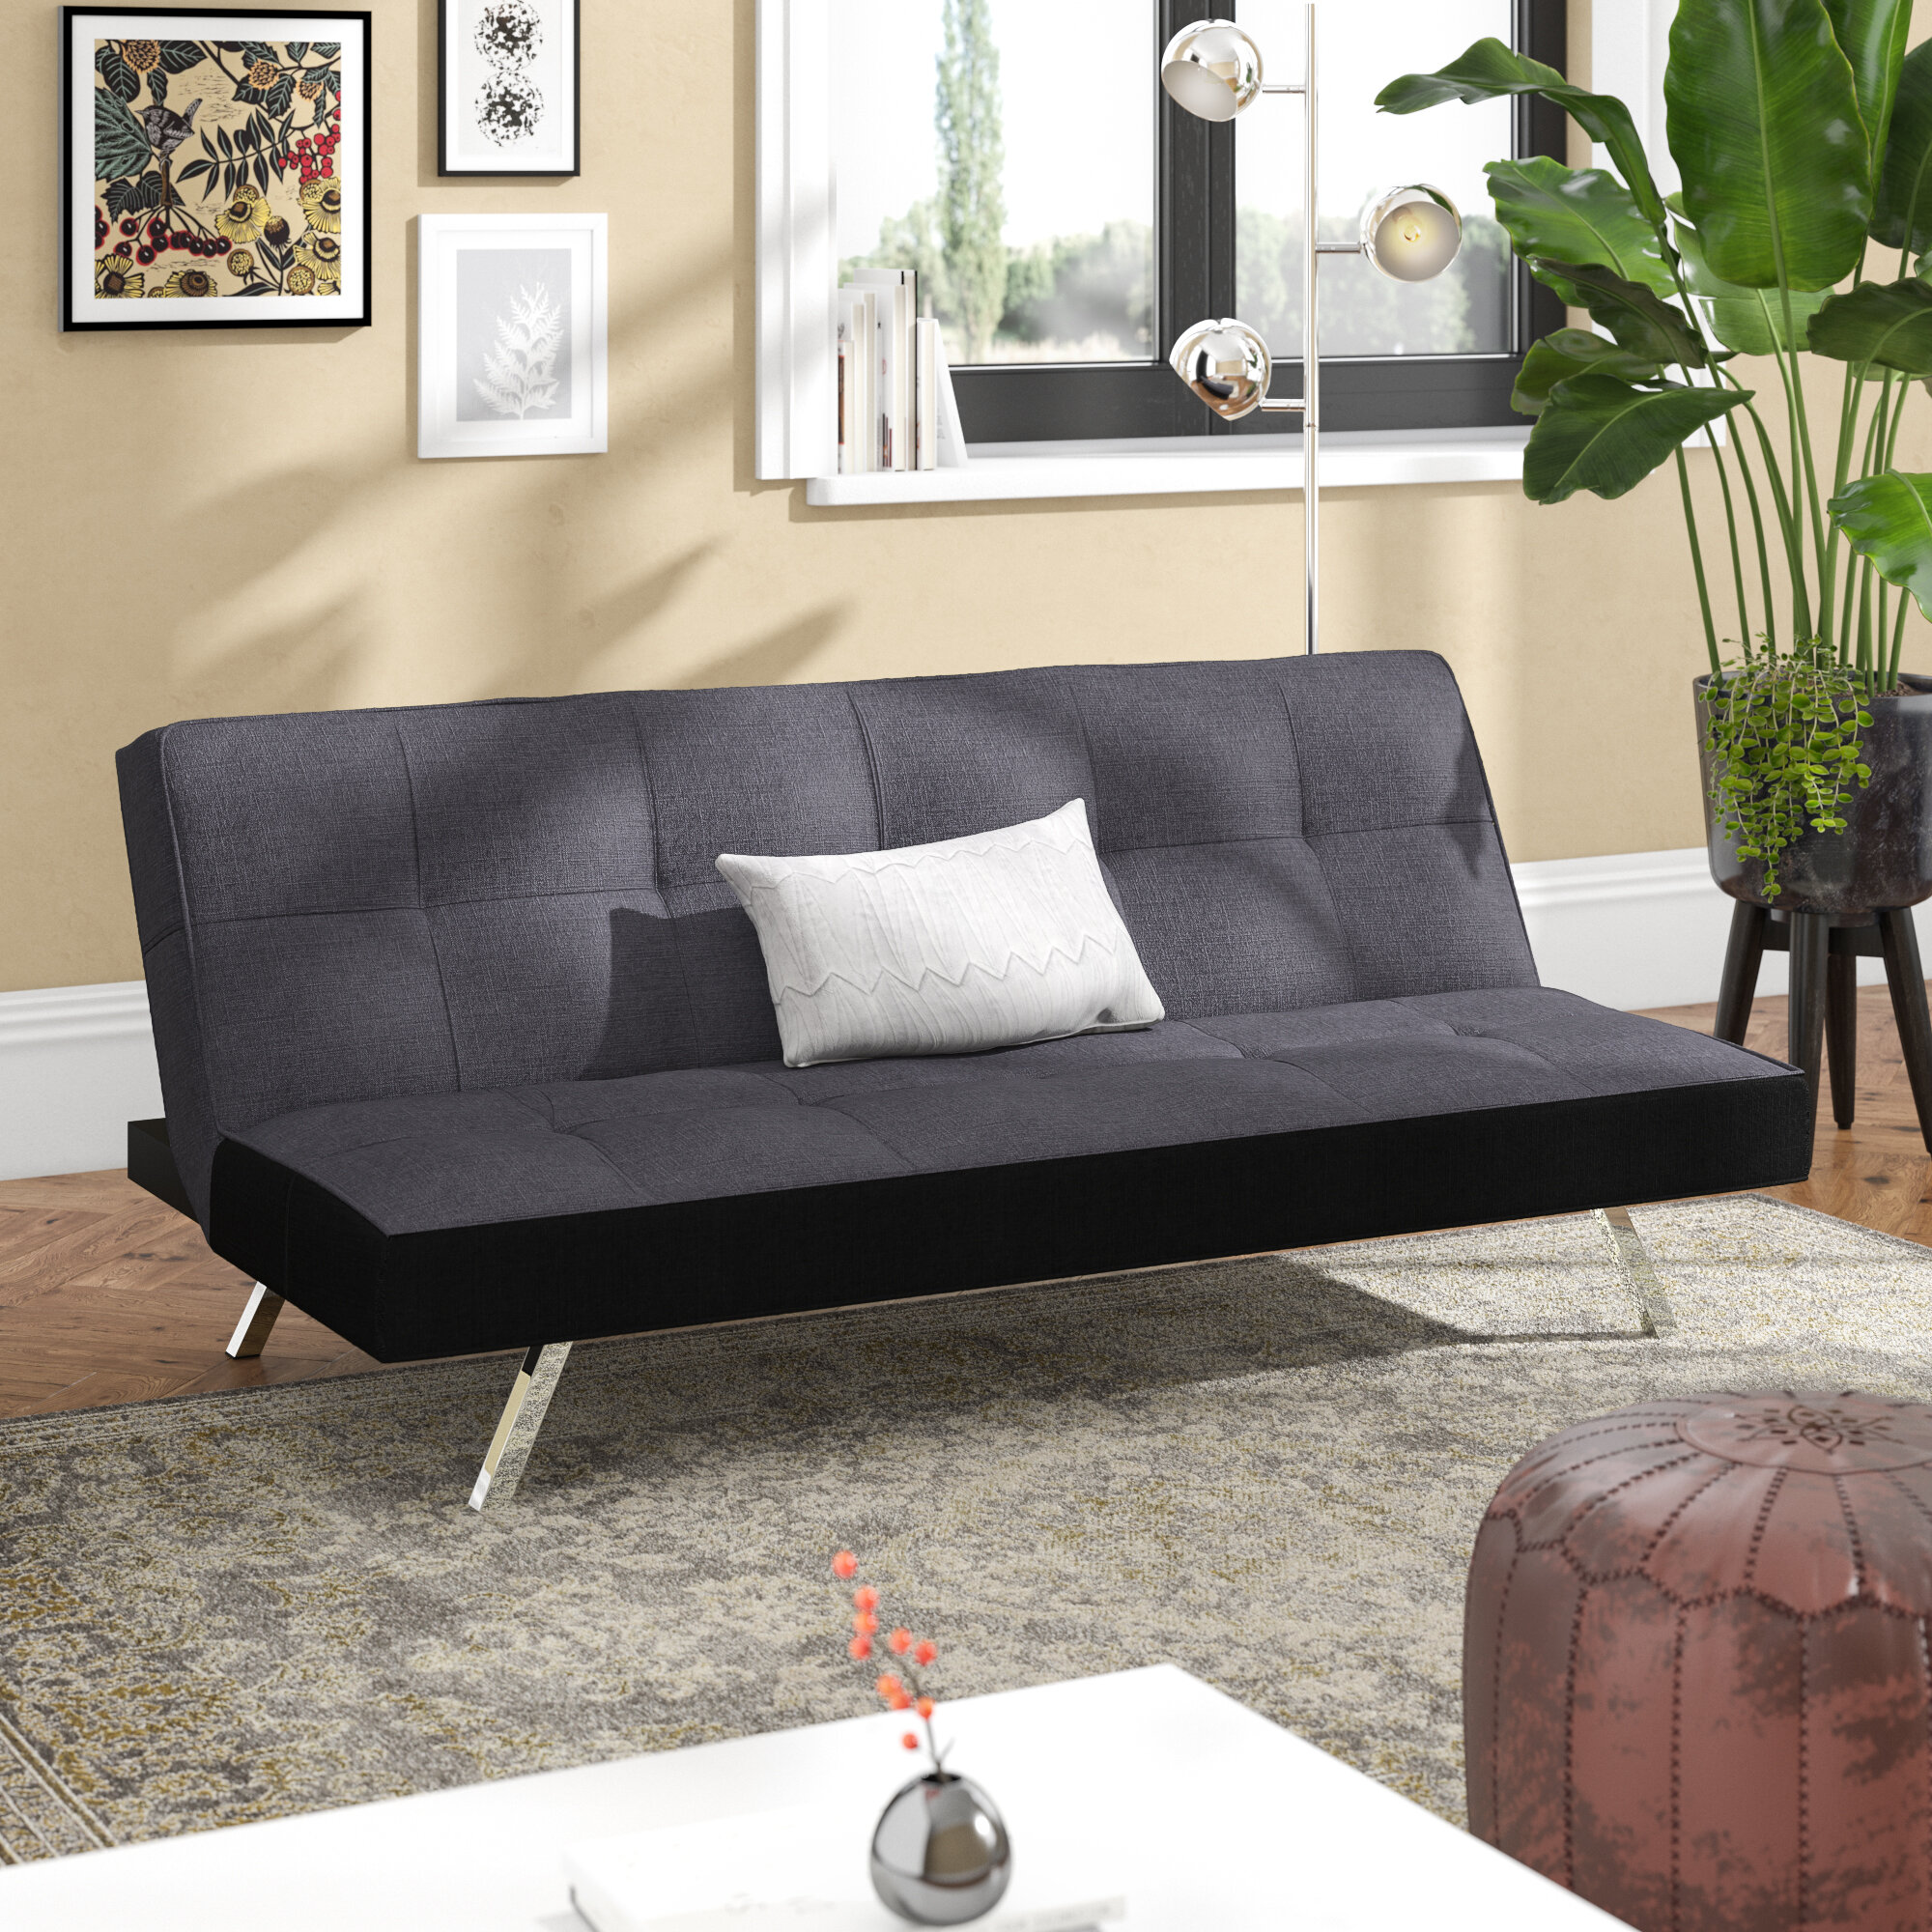 Fabriksnye 17 Stories Rayfield 3 Seater Clic Clac Sofa Bed & Reviews VY-02